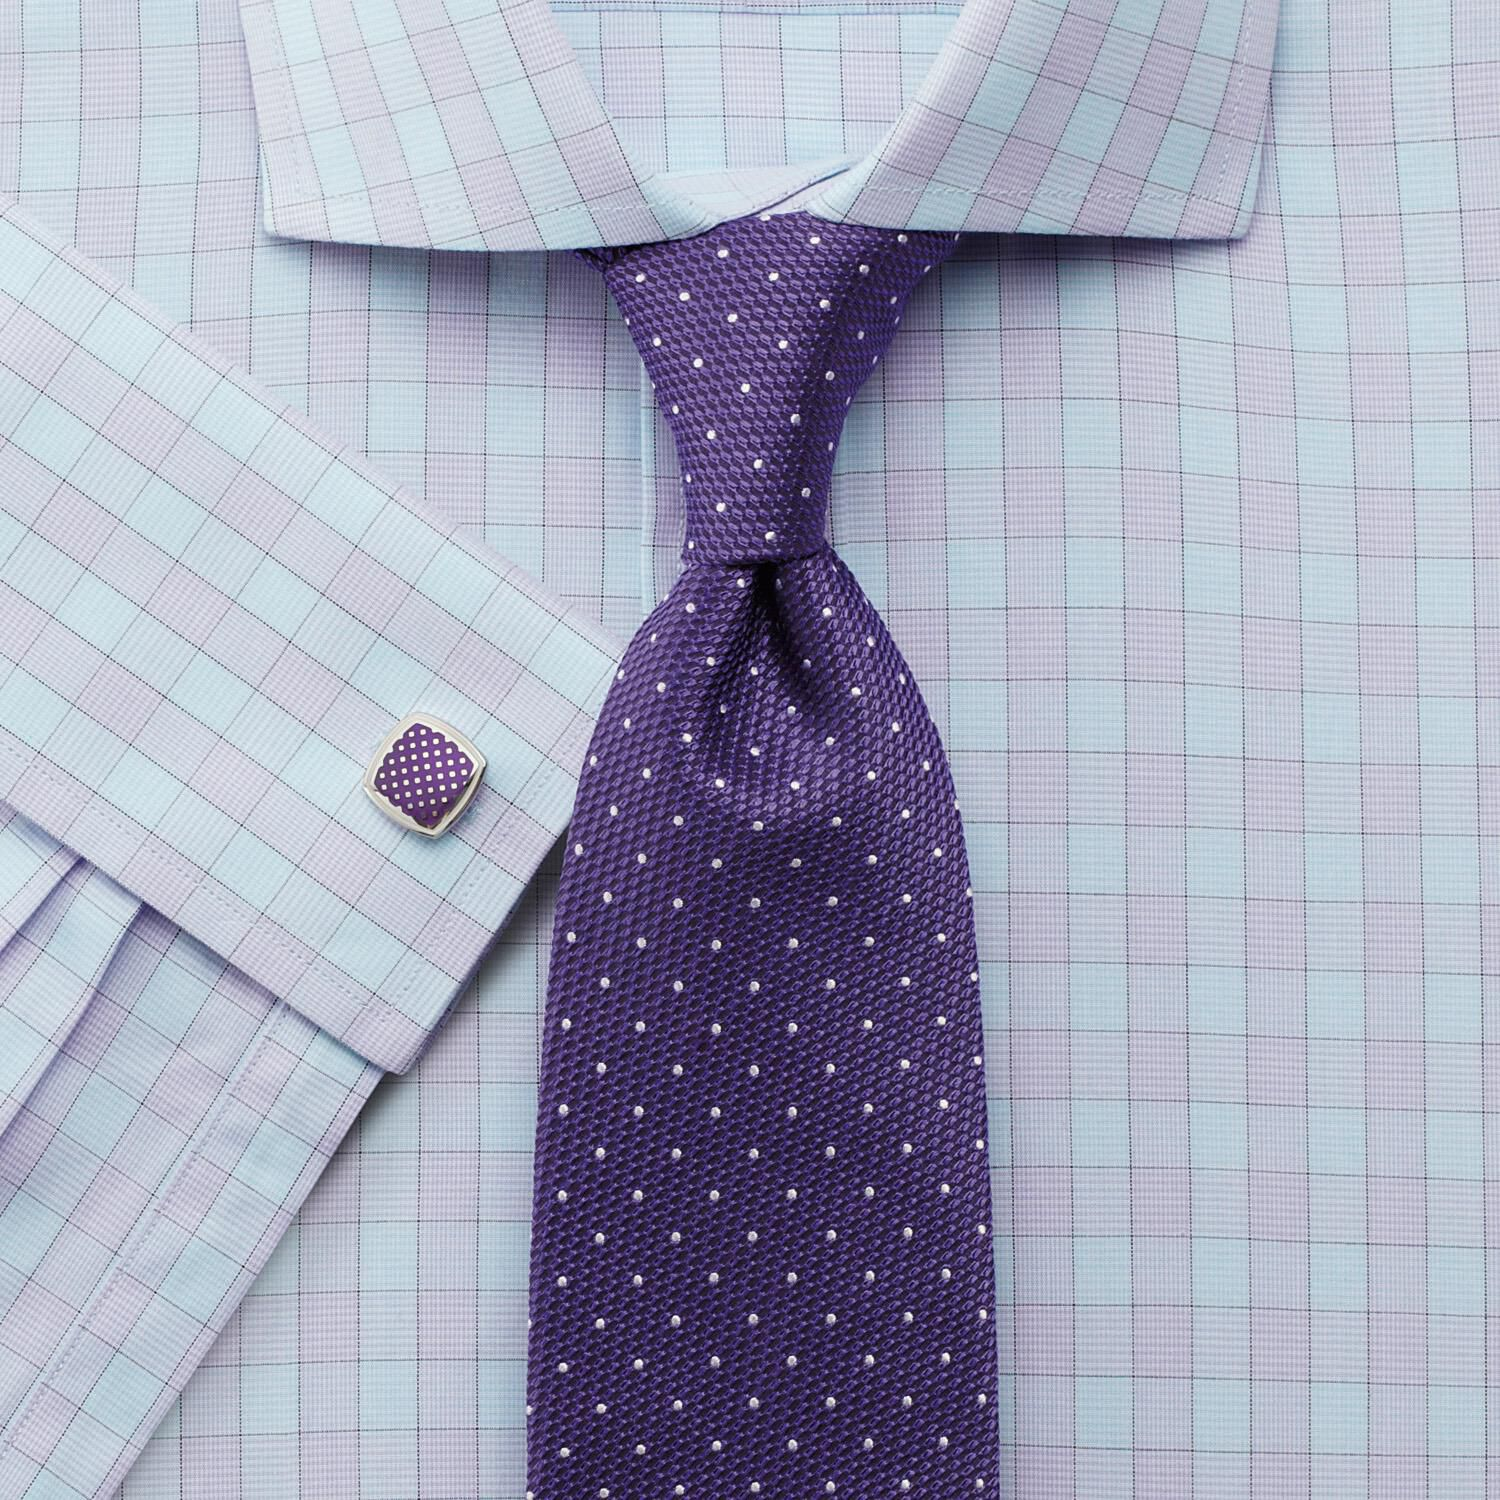 Slim Fit City Gingham Cutaway Lilac Cotton Formal Shirt Single Cuff Size 17/36 by Charles Tyrwhitt